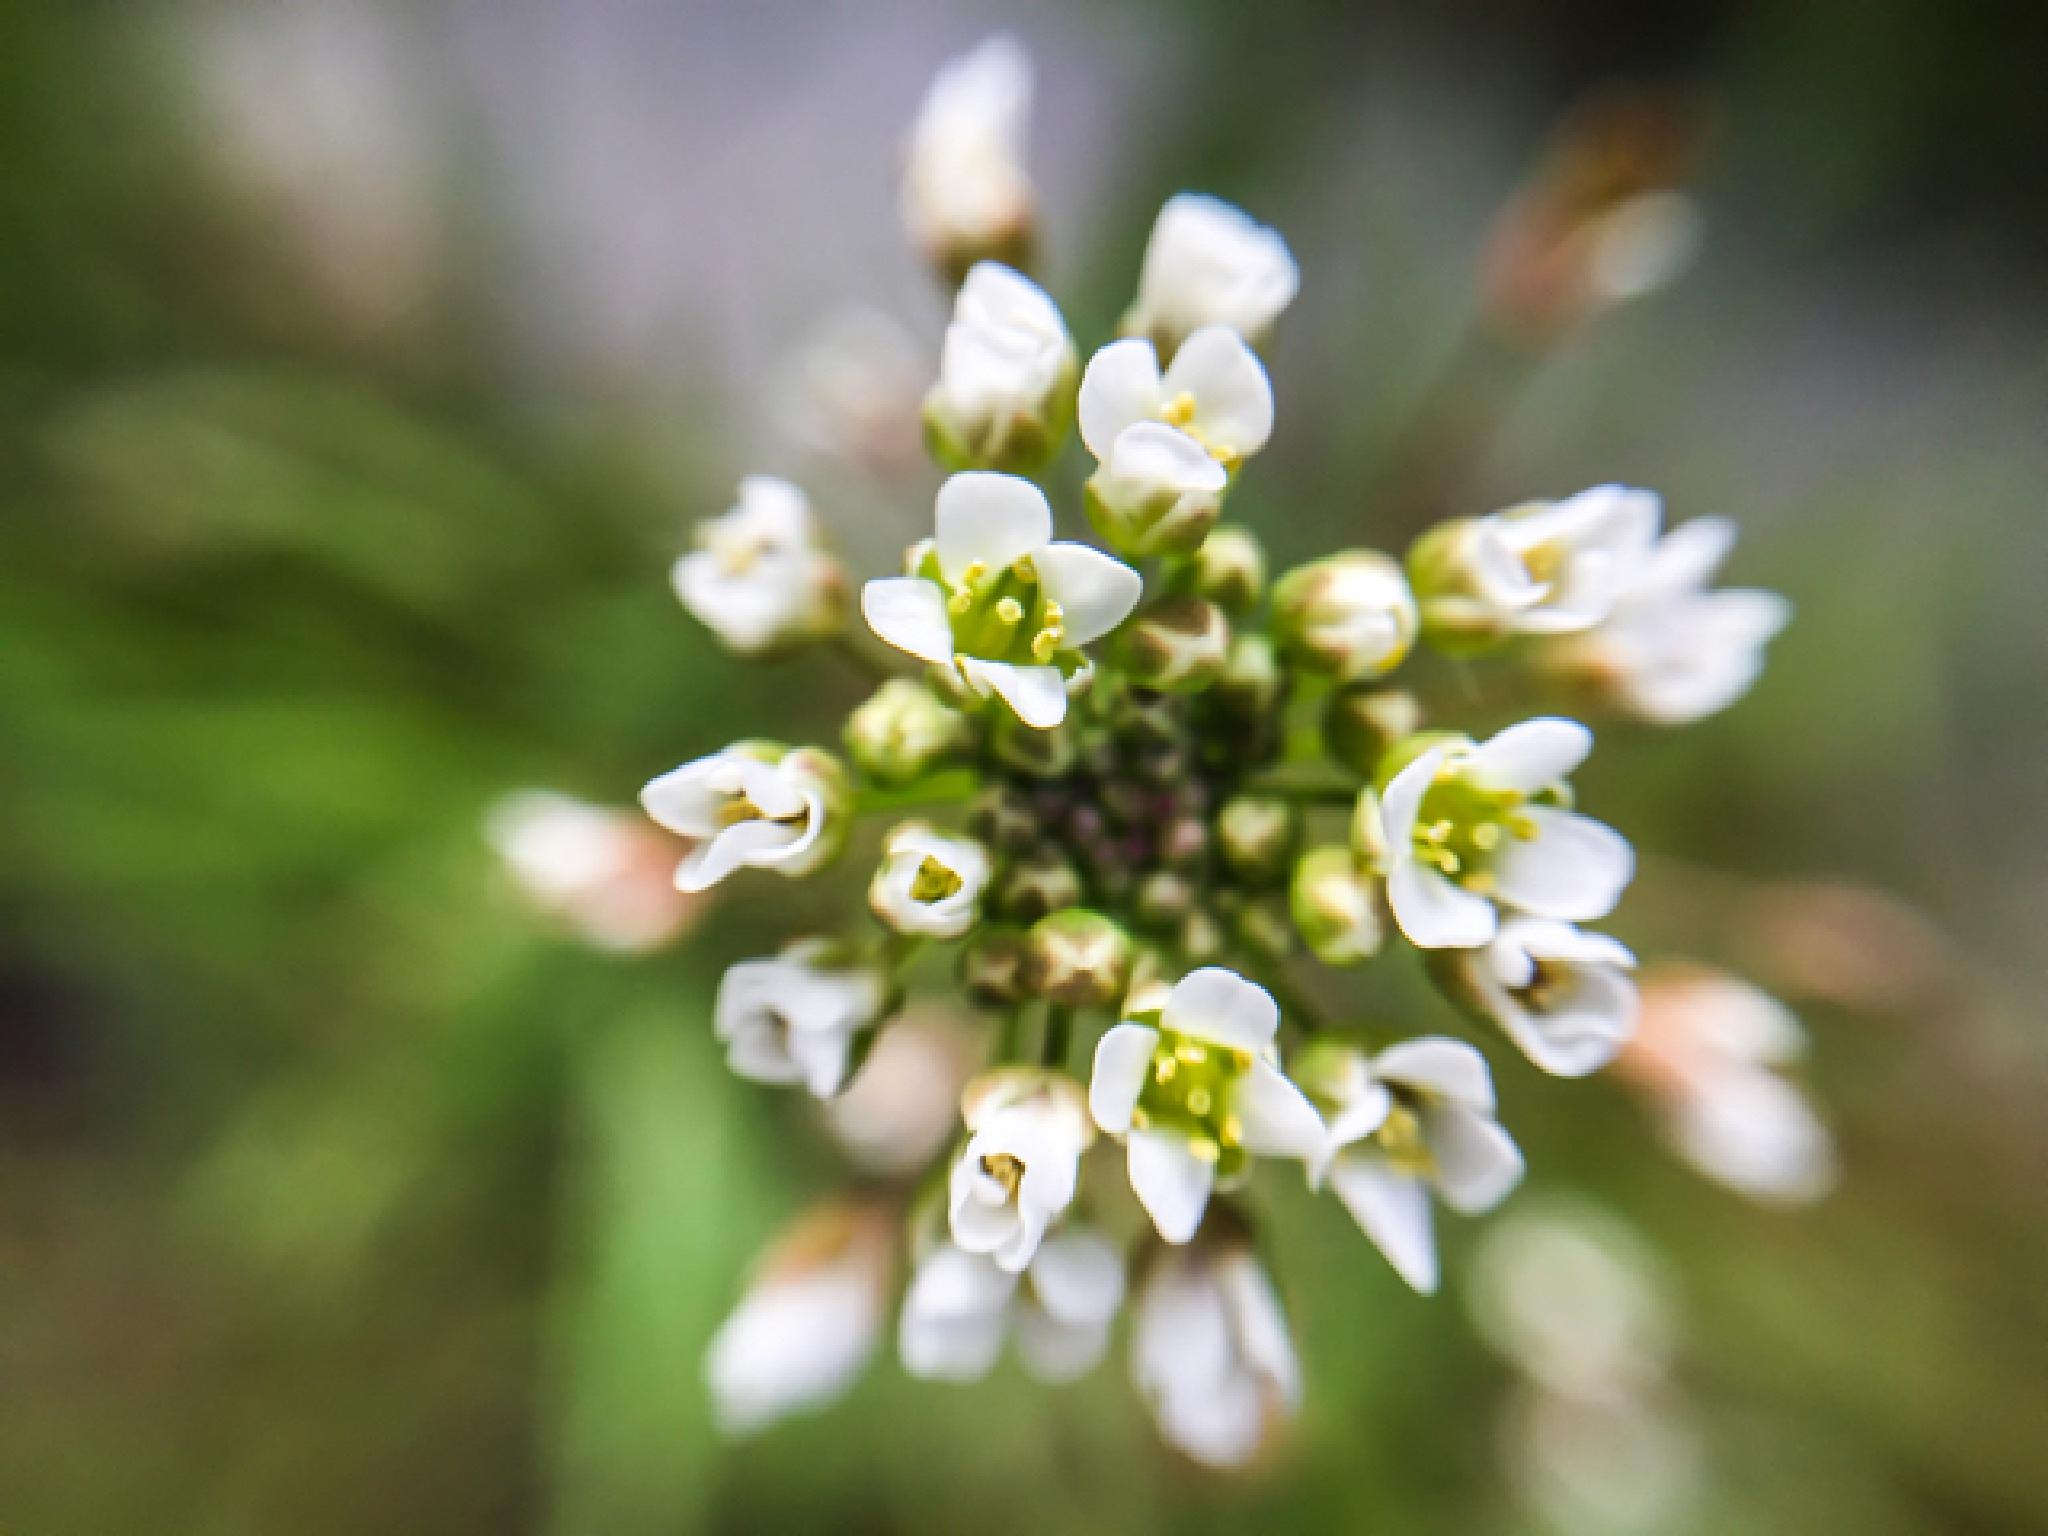 Tiny White Blooms by shaunarwhitaker